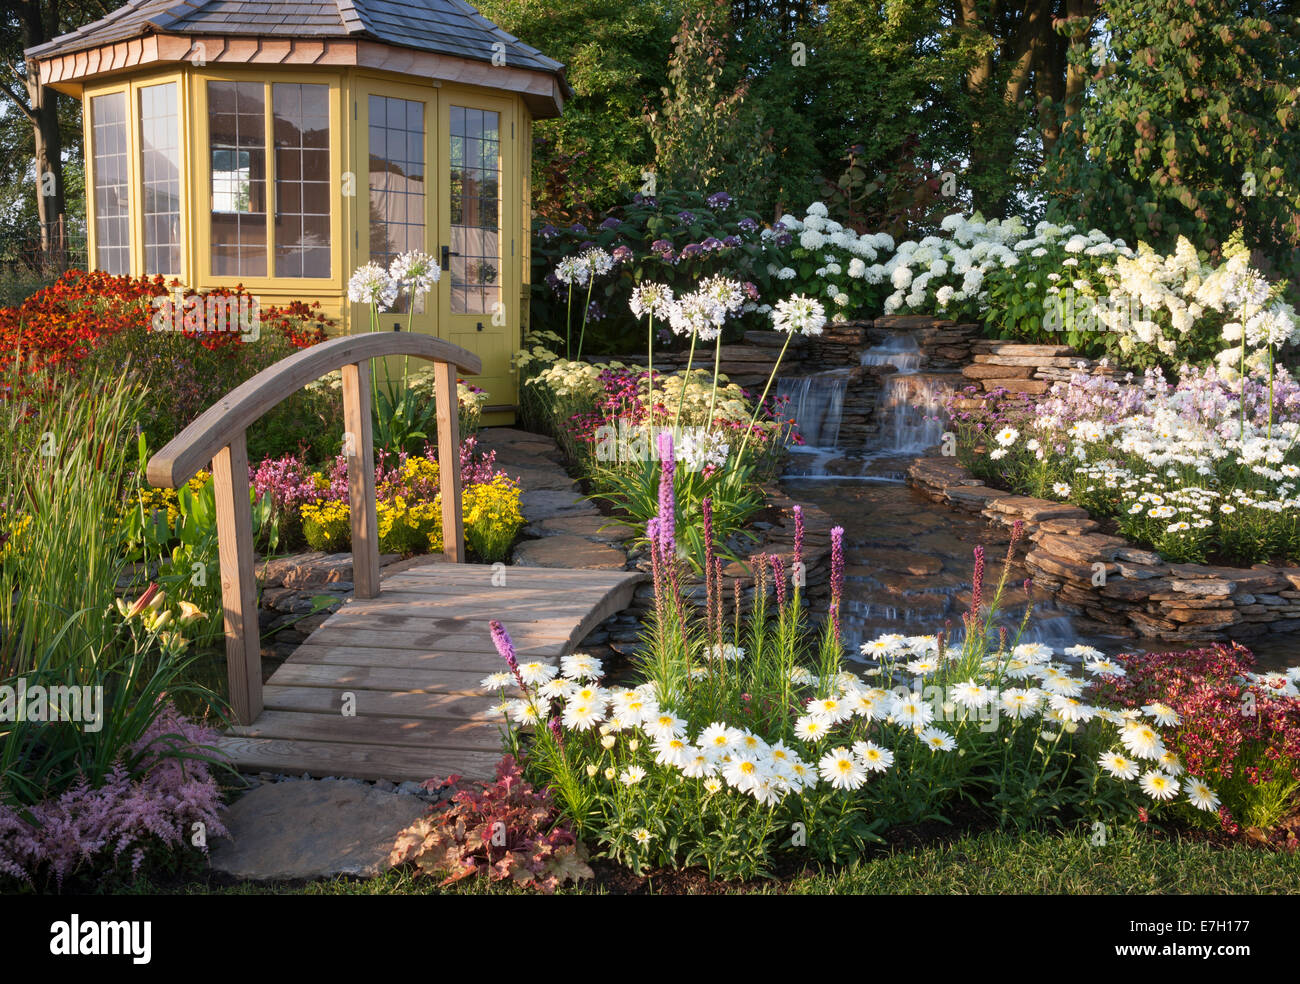 Garden - The Water Garden - summerhouse next to waterfall water feature with small wooden bridge and planting - Stock Image